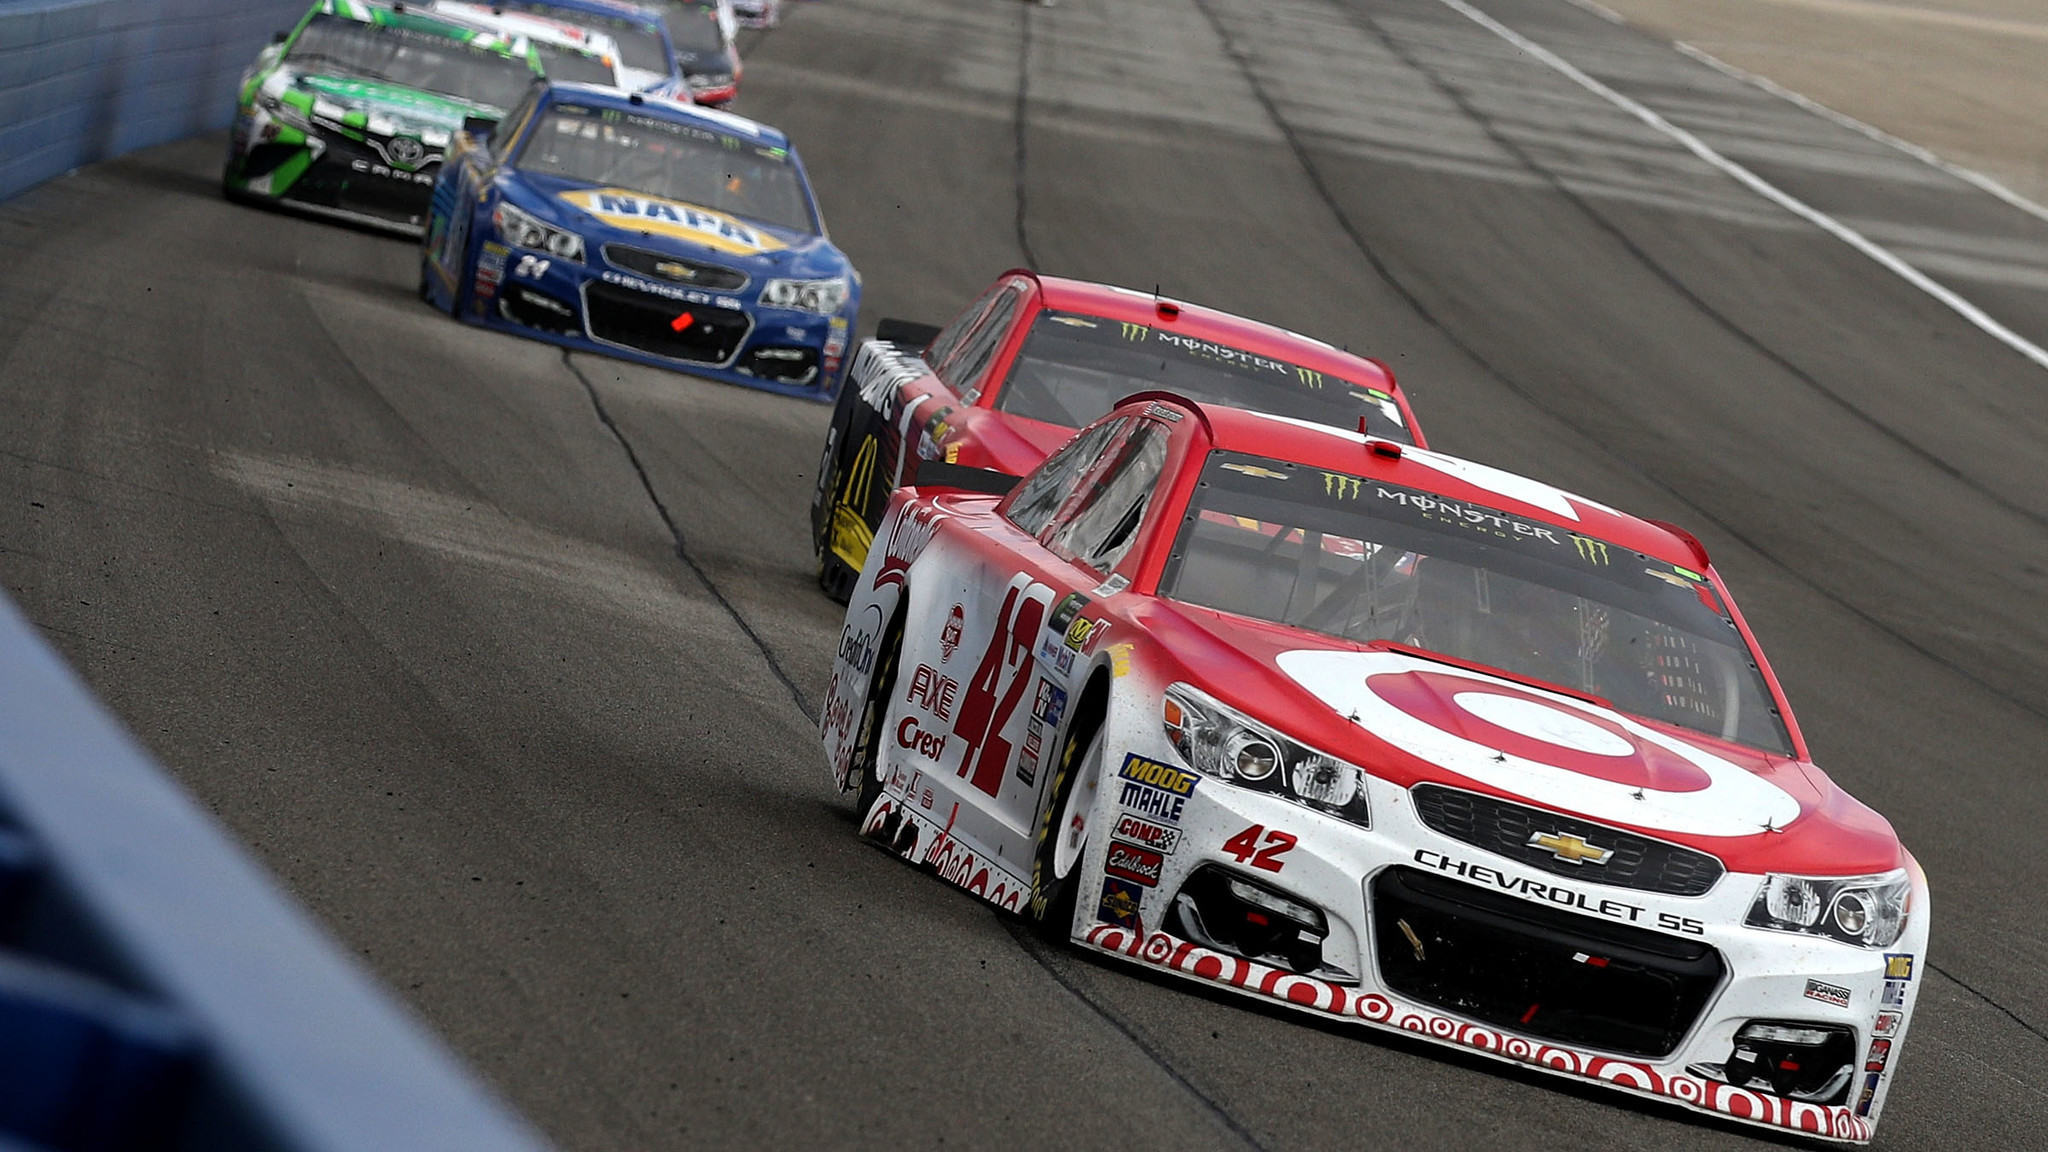 Kyle Larson Gets First NASCAR Cup Win Of Season At Auto Club 400 In Fontana